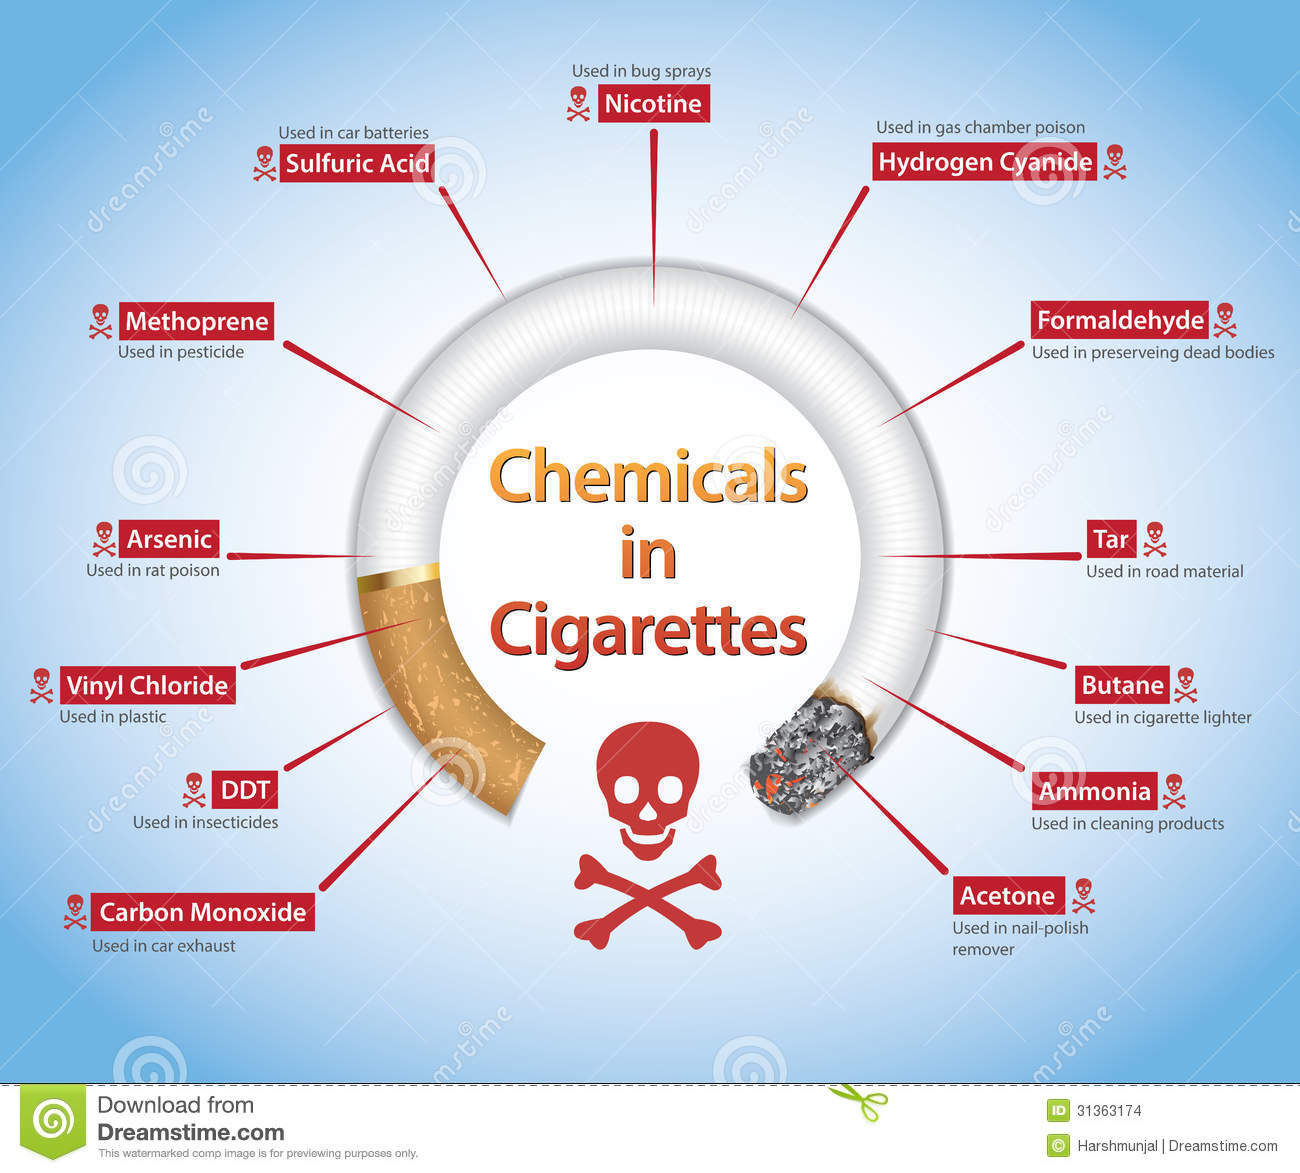 Smoking is harmful to your health